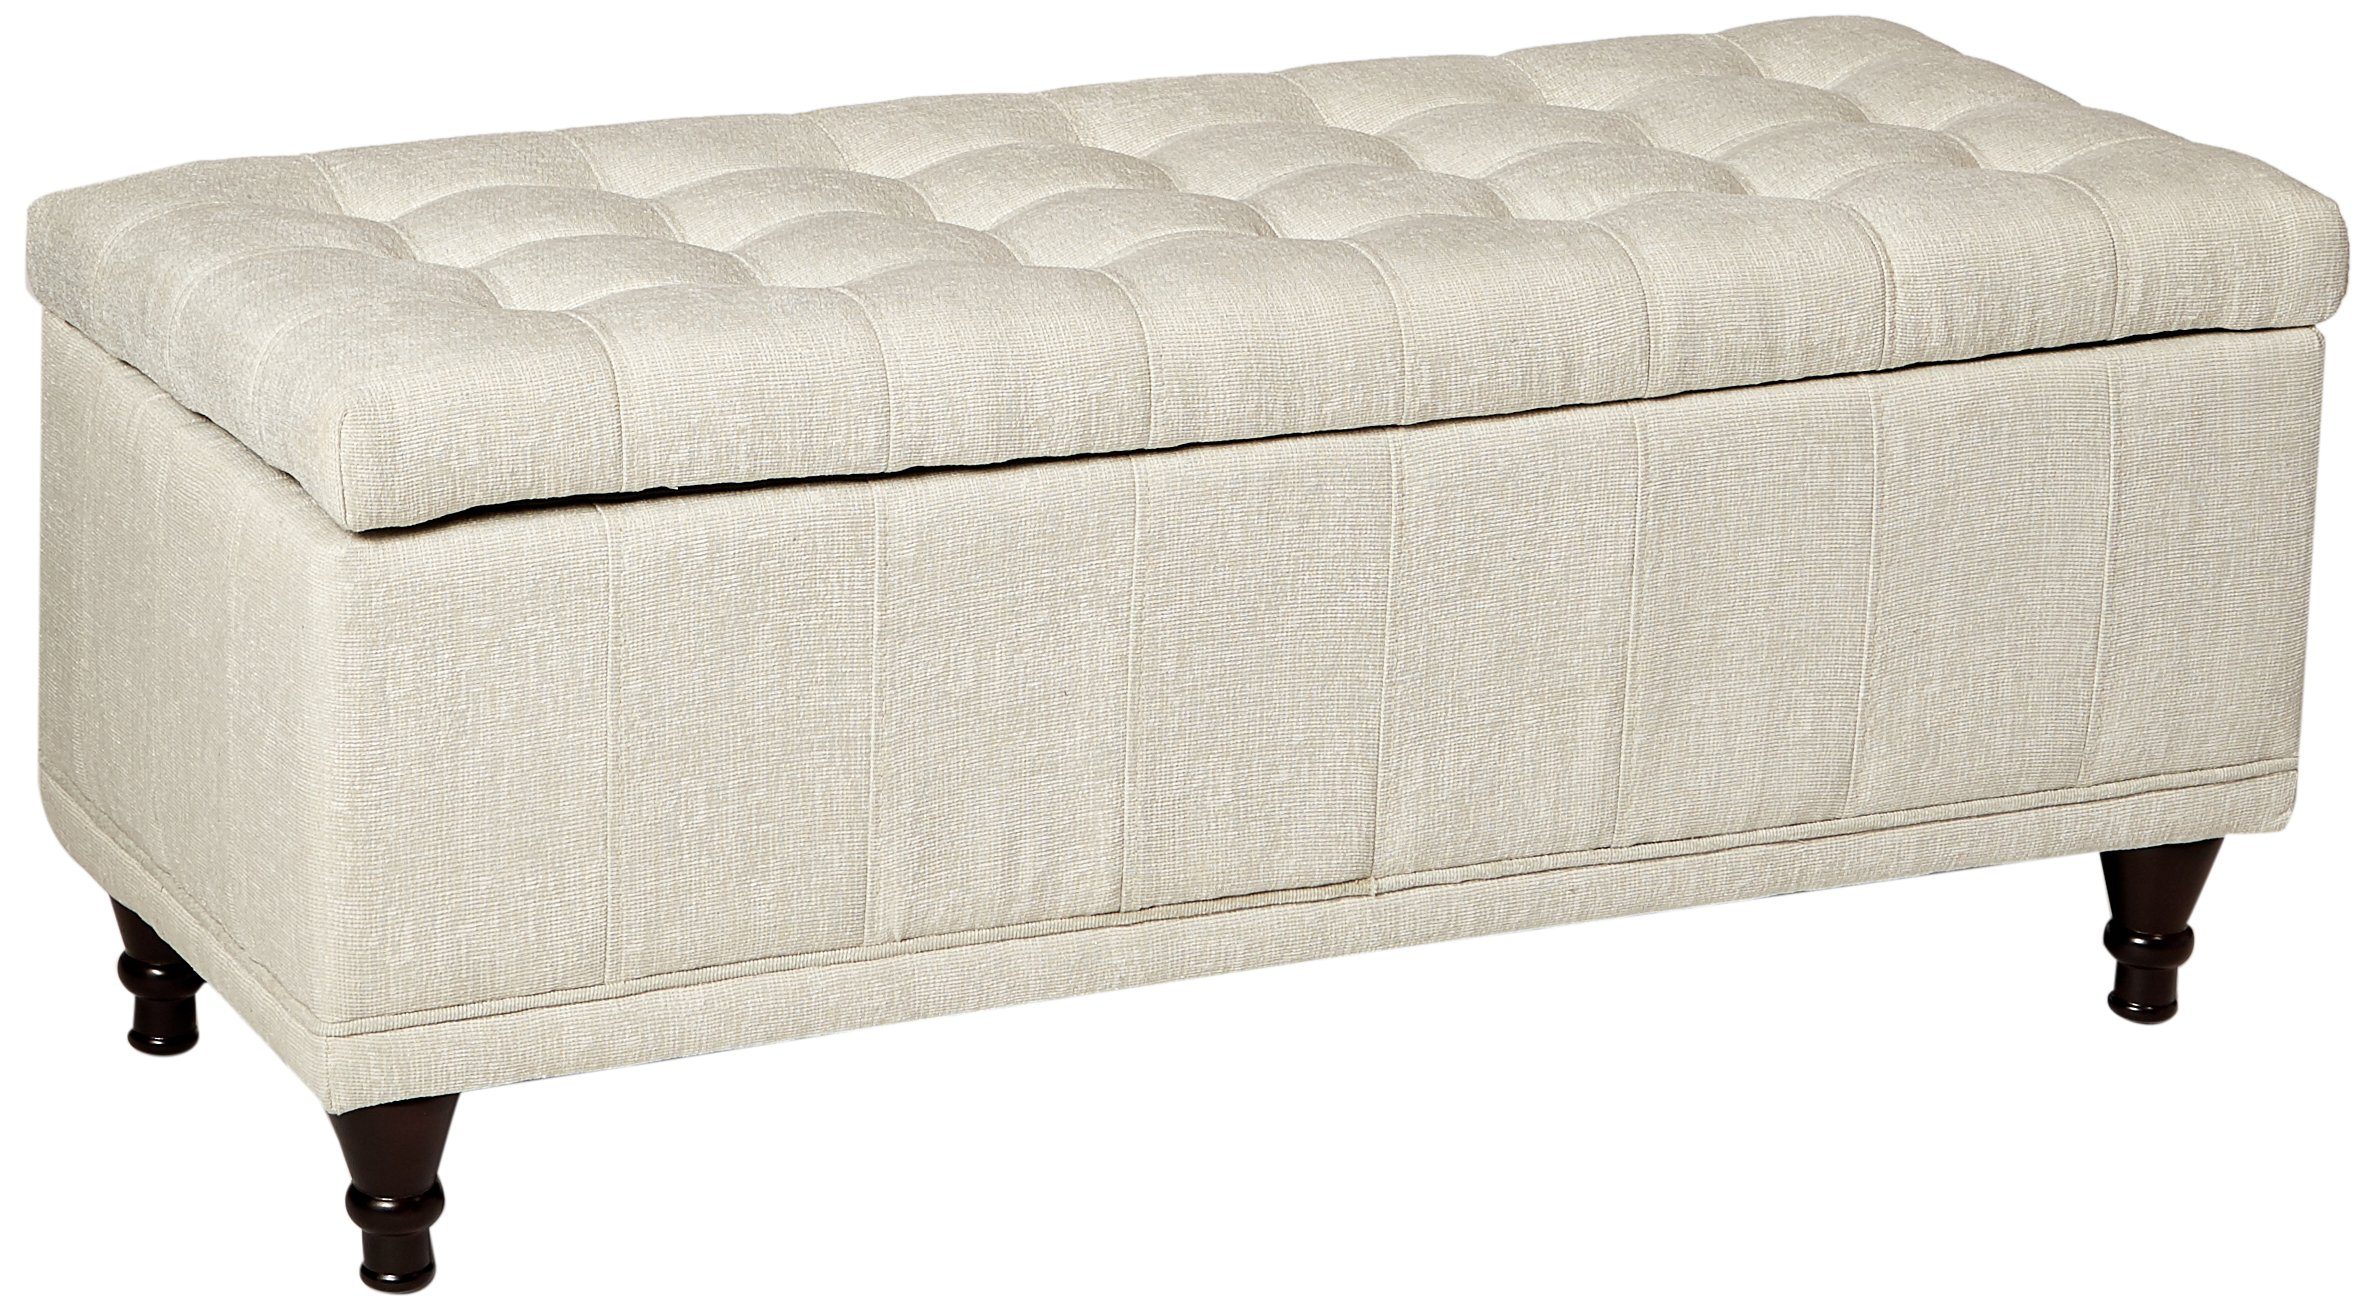 Homelegance 4730NF Lift Top Storage Bench with Tufted Accents, Beige Fabric by Homelegance